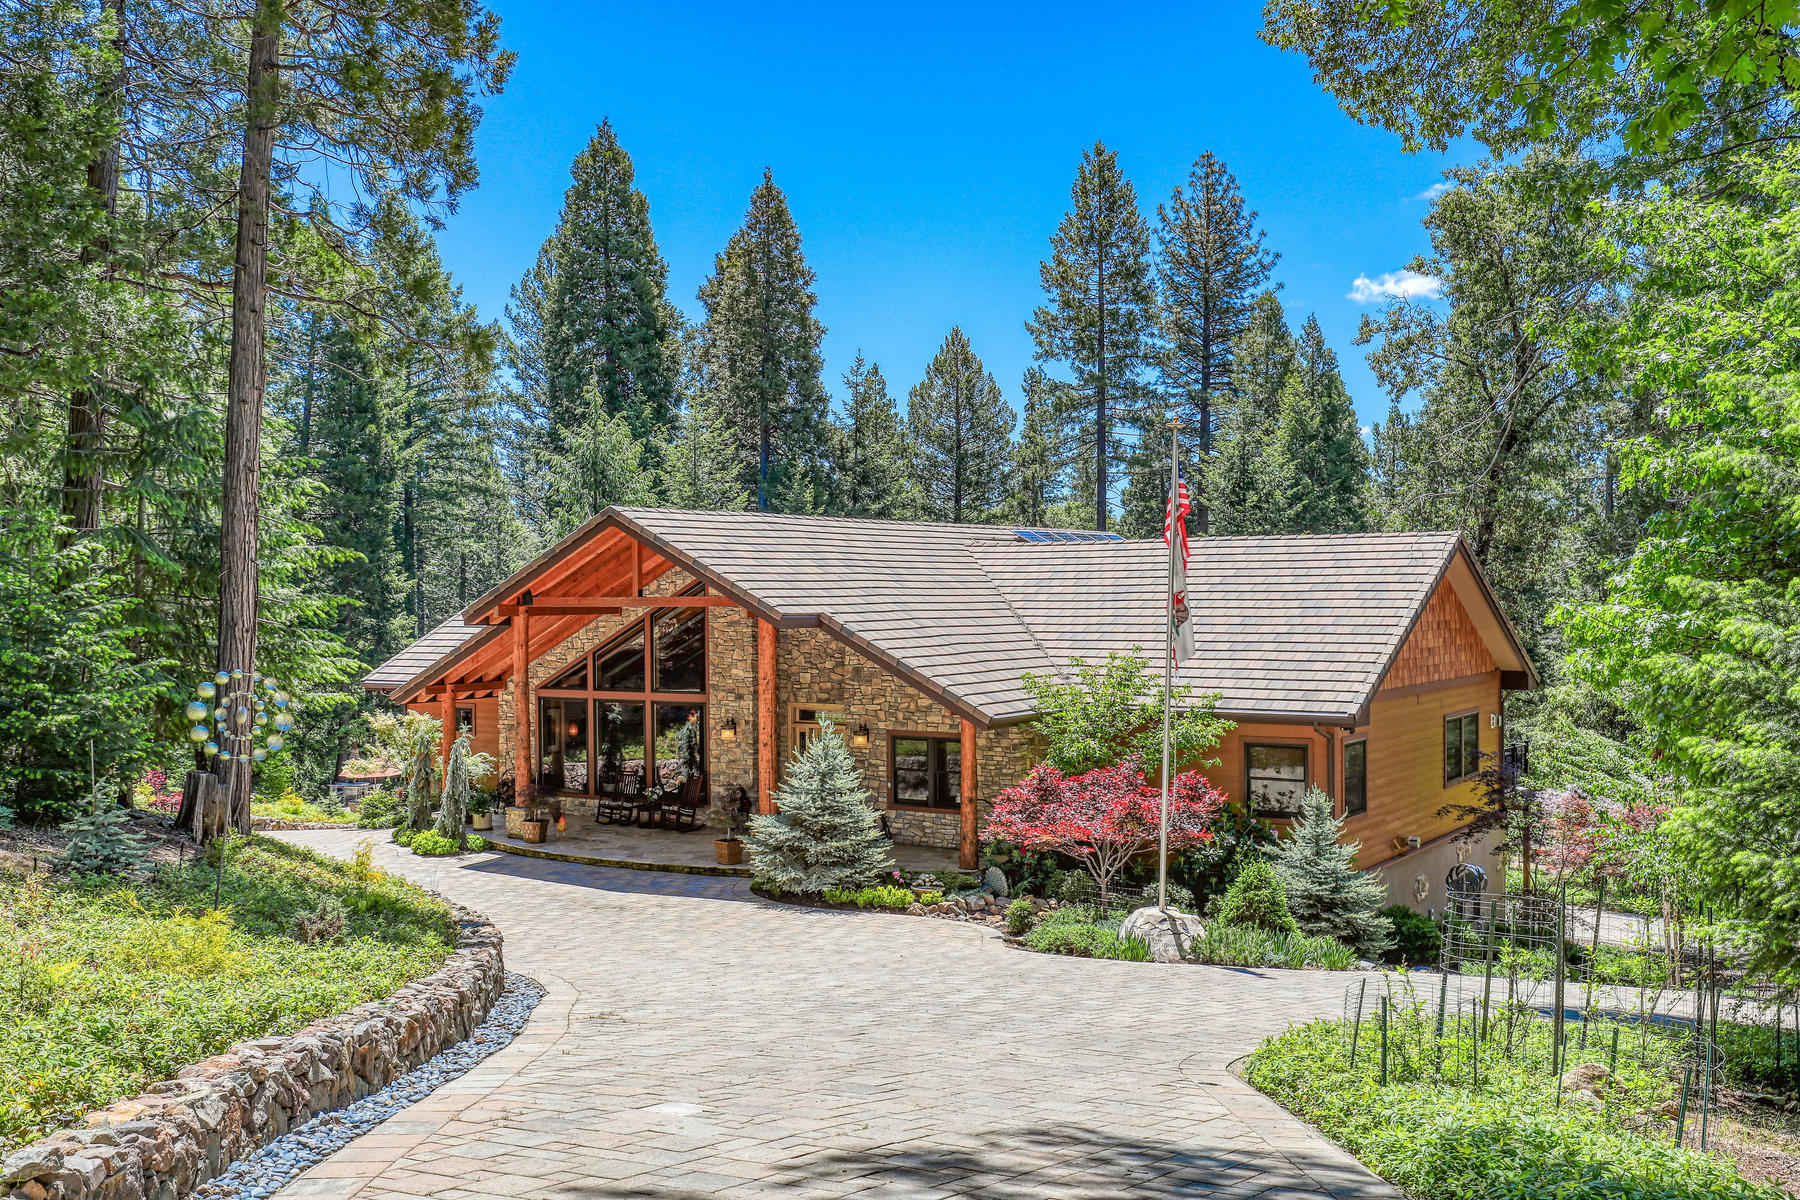 Property for Active at Custom Tahoe-Style Eco Home 13905 Gemini Court Nevada City, California 95959 United States